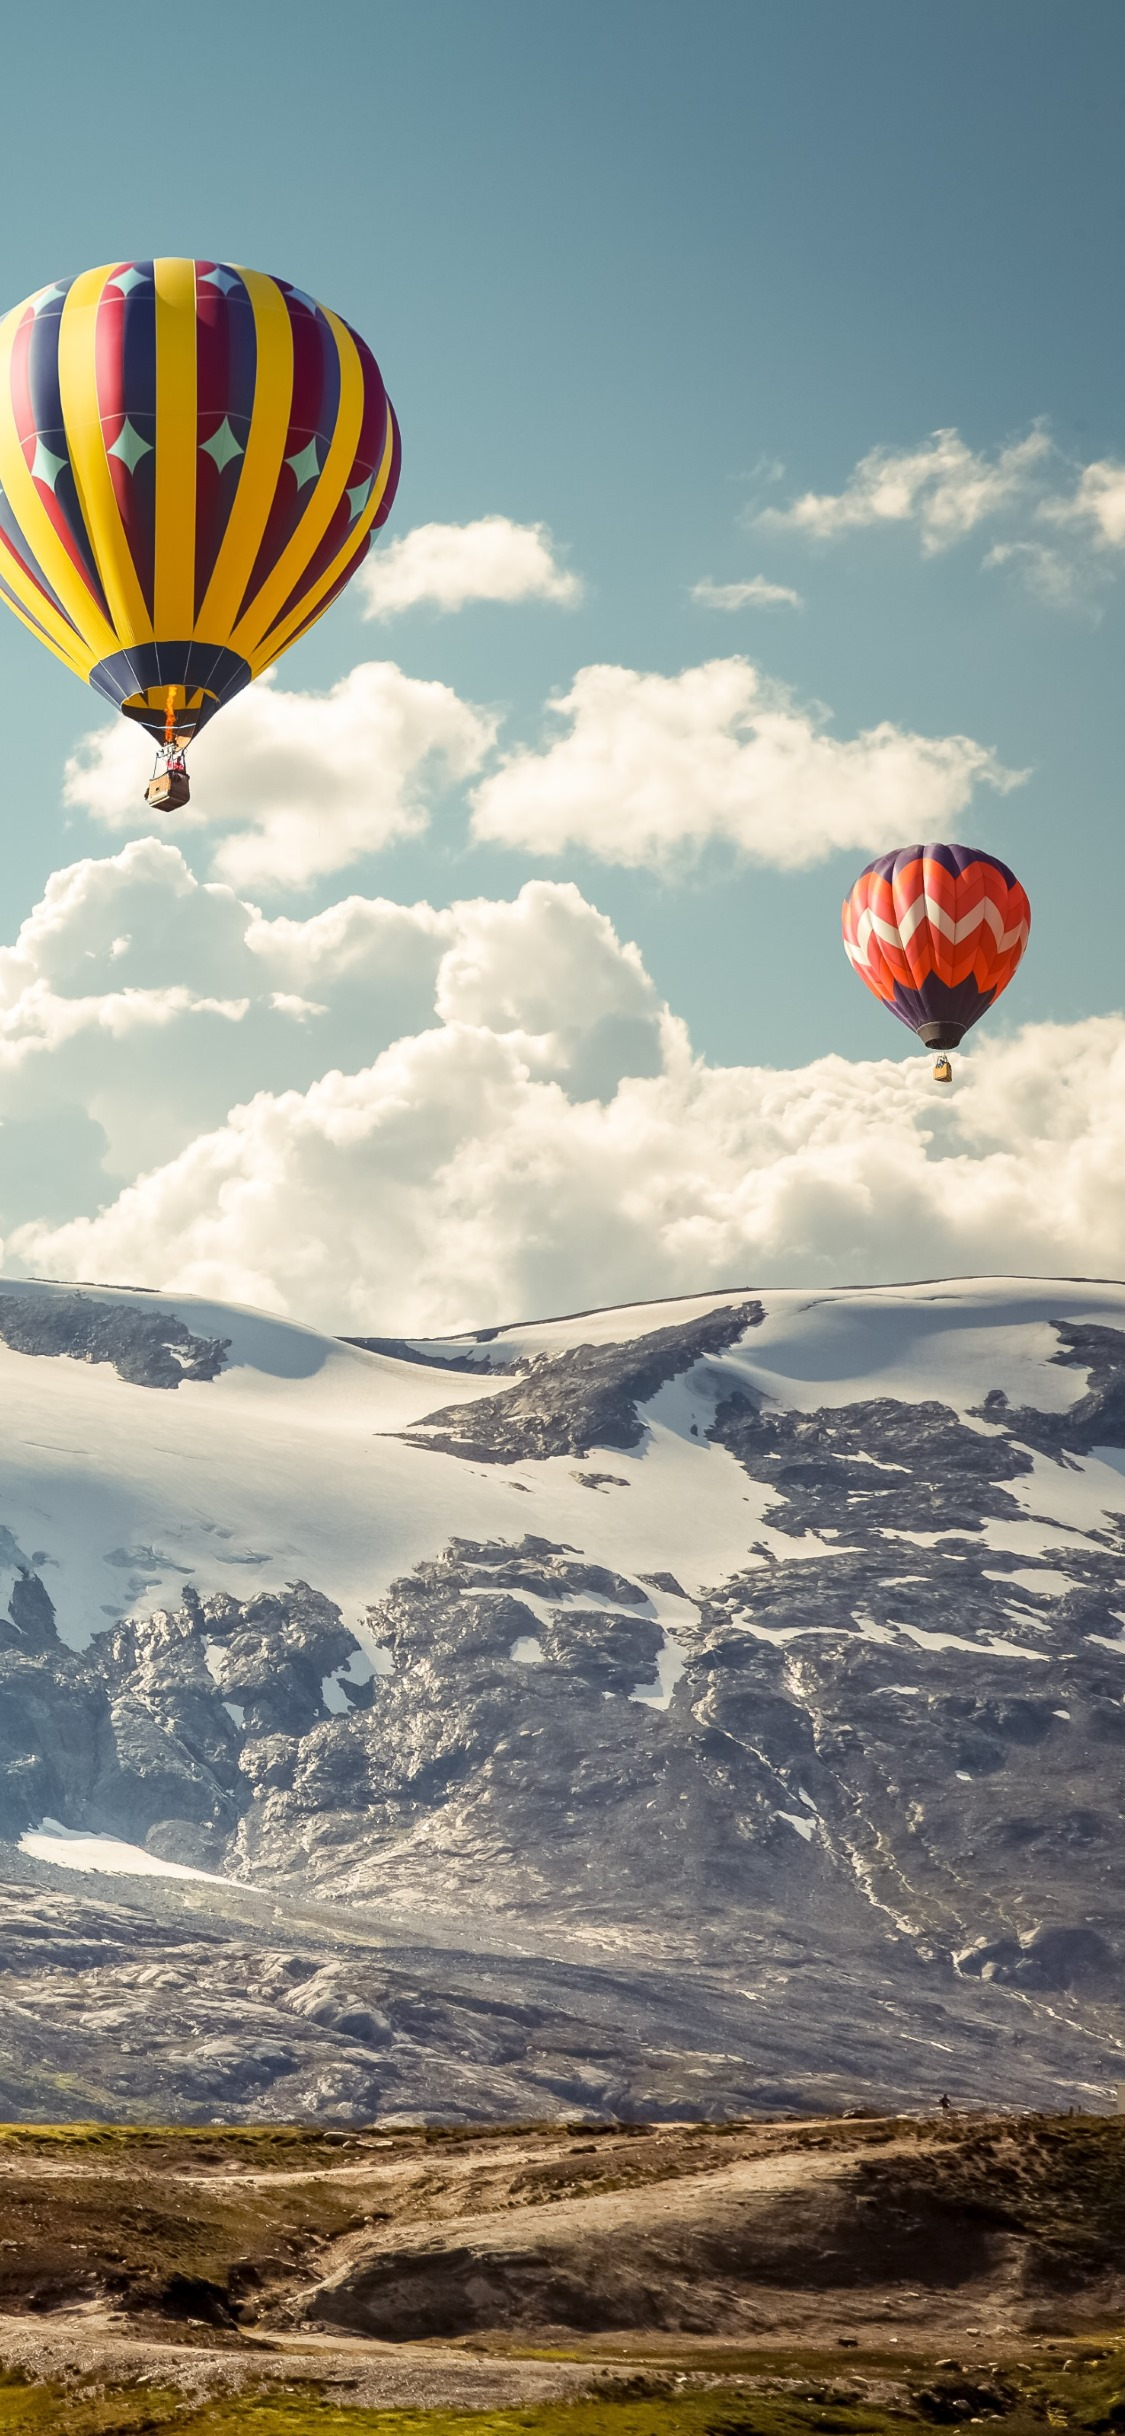 Hot air balloons wallpaper 1125x2436